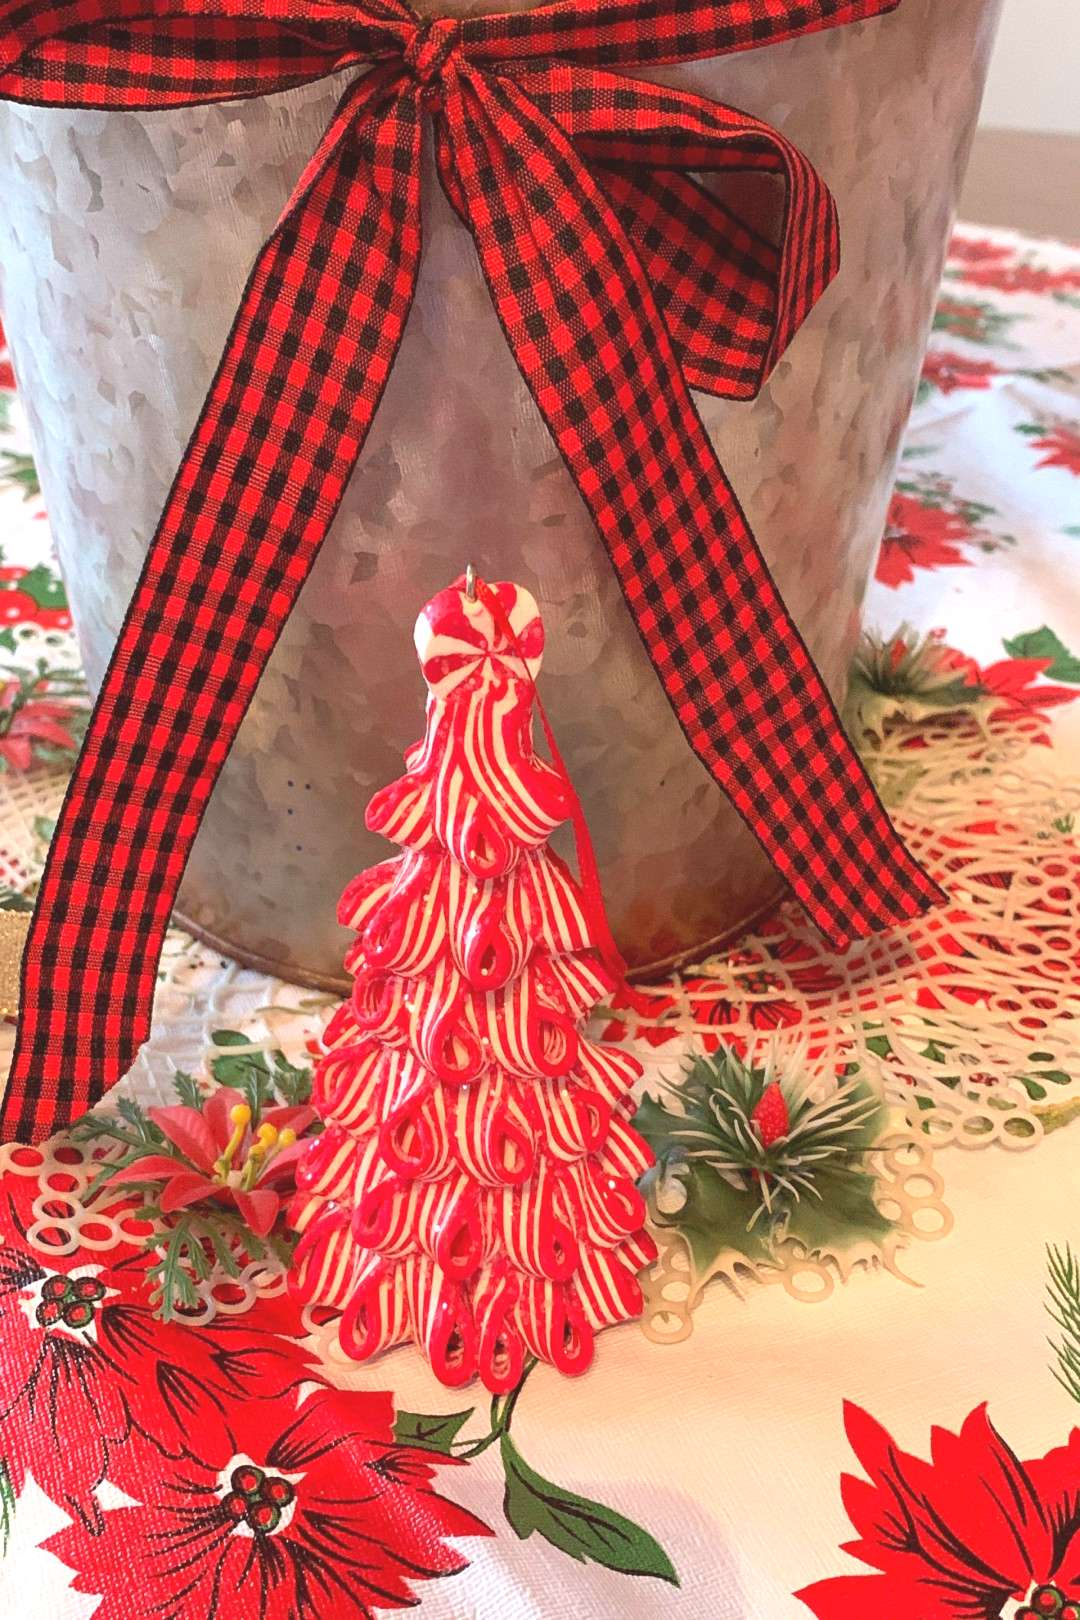 Vintage Retro Peppermint Candy Stripped Glitter Candy Cane Tree Five Inches Tall Vintage Retro Pepp